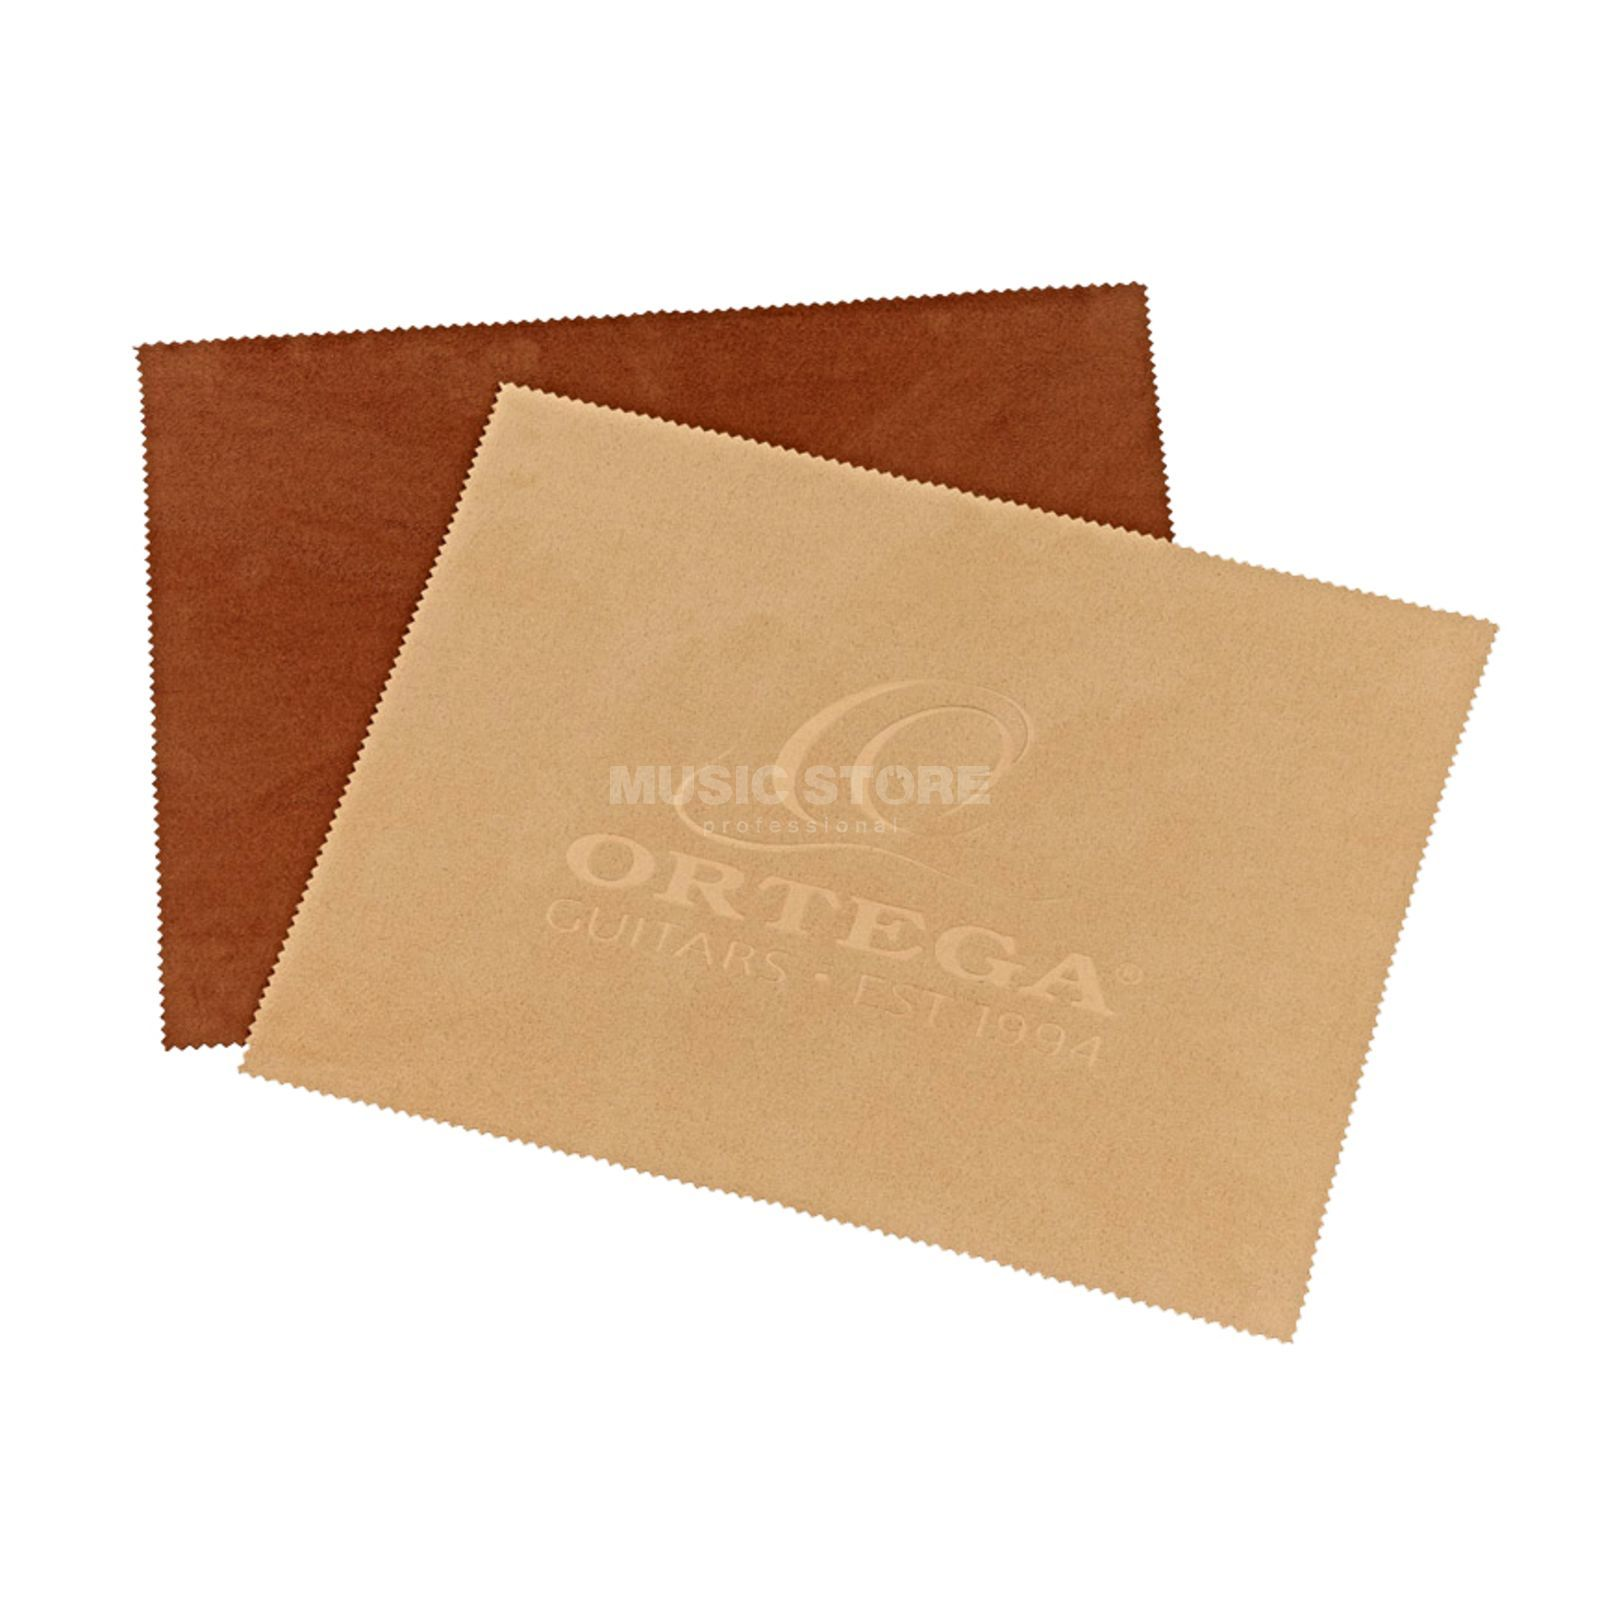 Ortega OPC-LY/LB Polish Cloth Light Yellow/Light Brown Imagem do produto